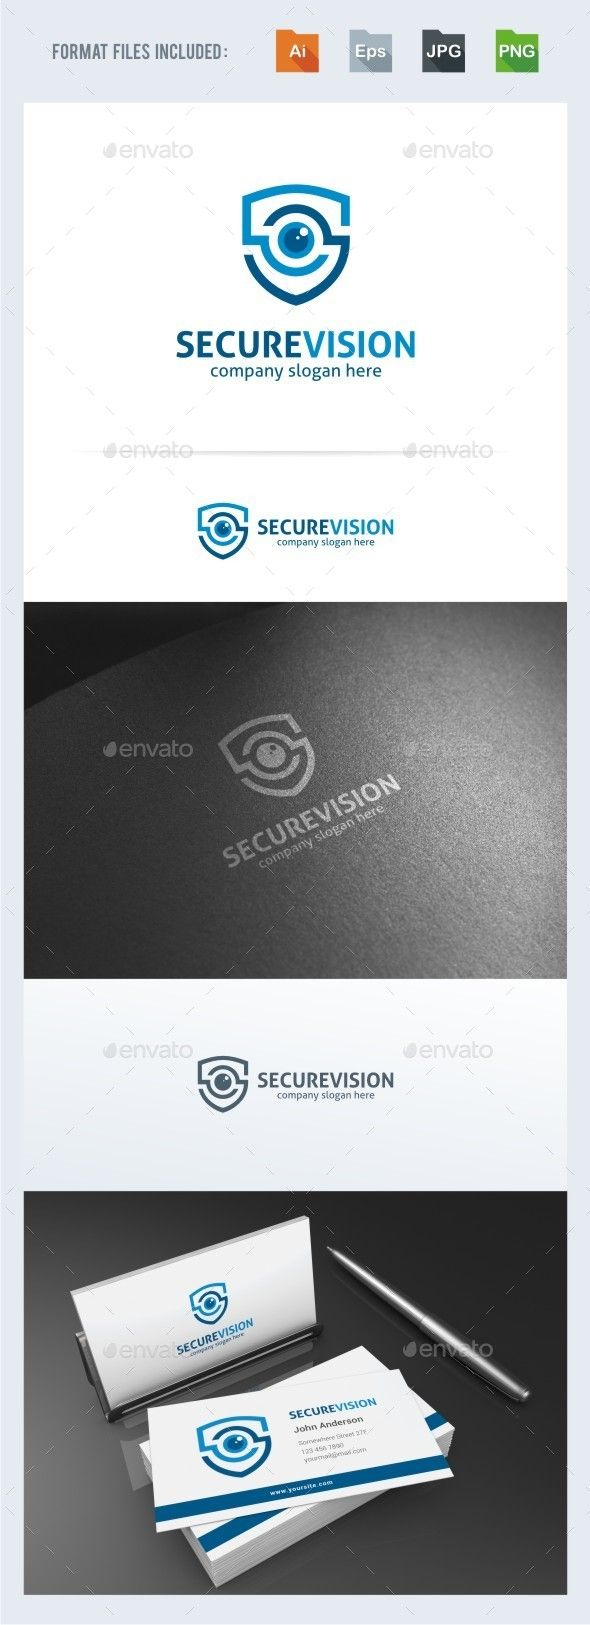 Secure Vision Logo Template,agency, camera, cctv, defence, eye, eye care, guard, healthcare, image, lens, monitoring, movie, multimedia, photo, photographer, photography, protection, safety, secure, security, shield, software, spy, surveillance, technology, video, view, vision, webcam, website